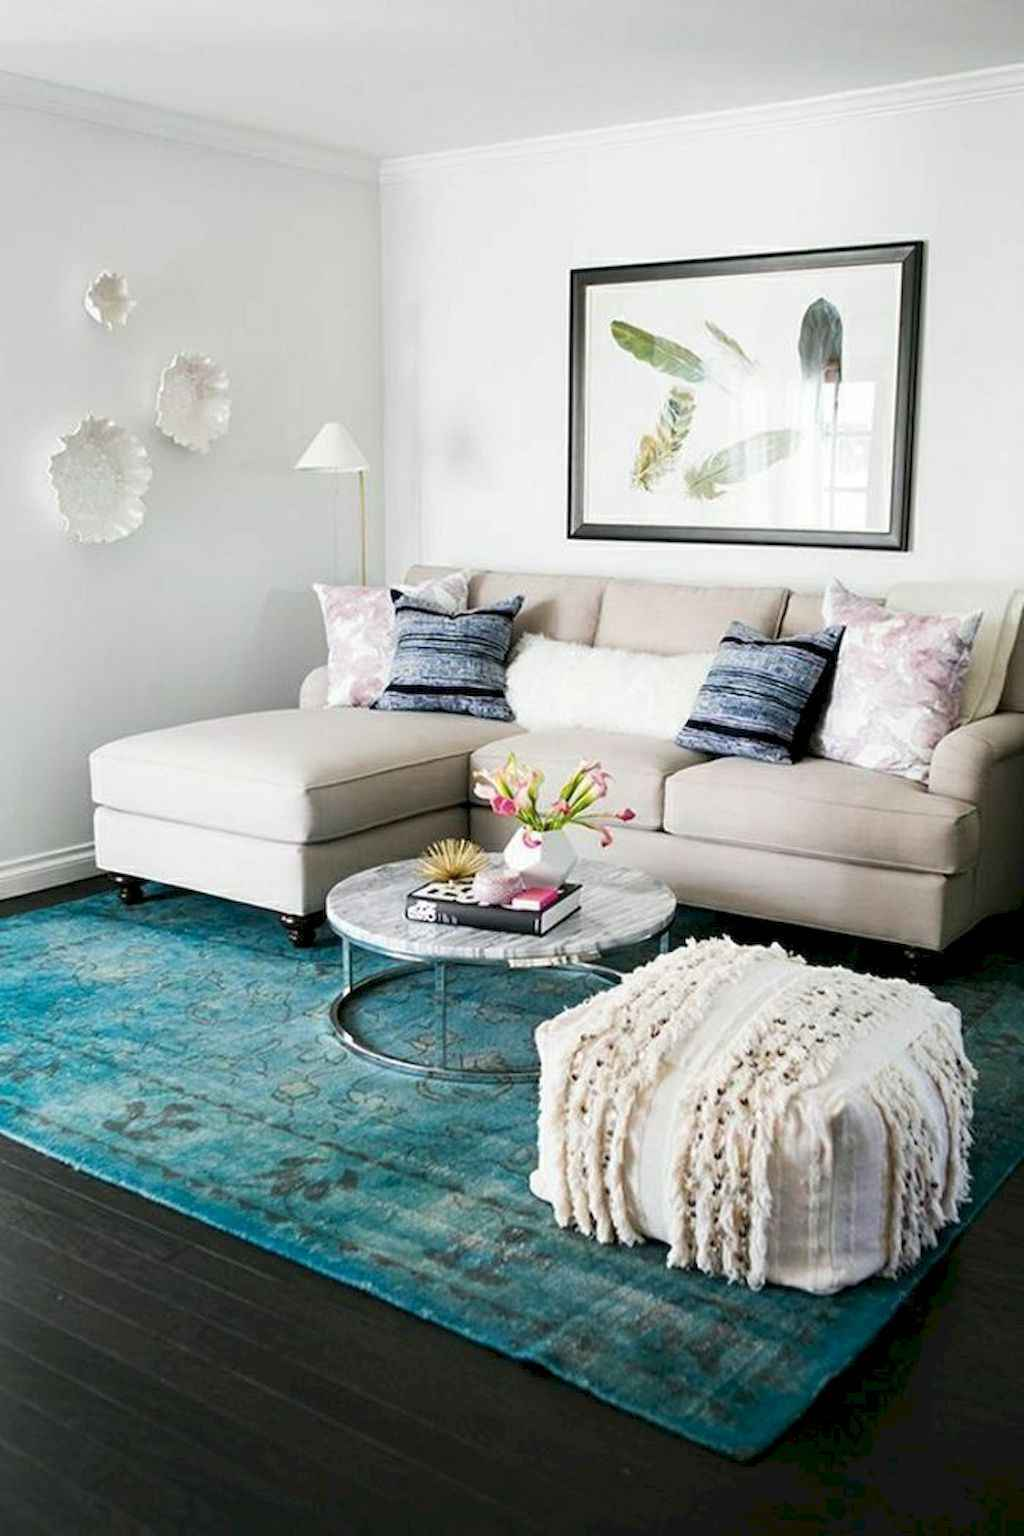 Awesome apartment living room decorating ideas (12)